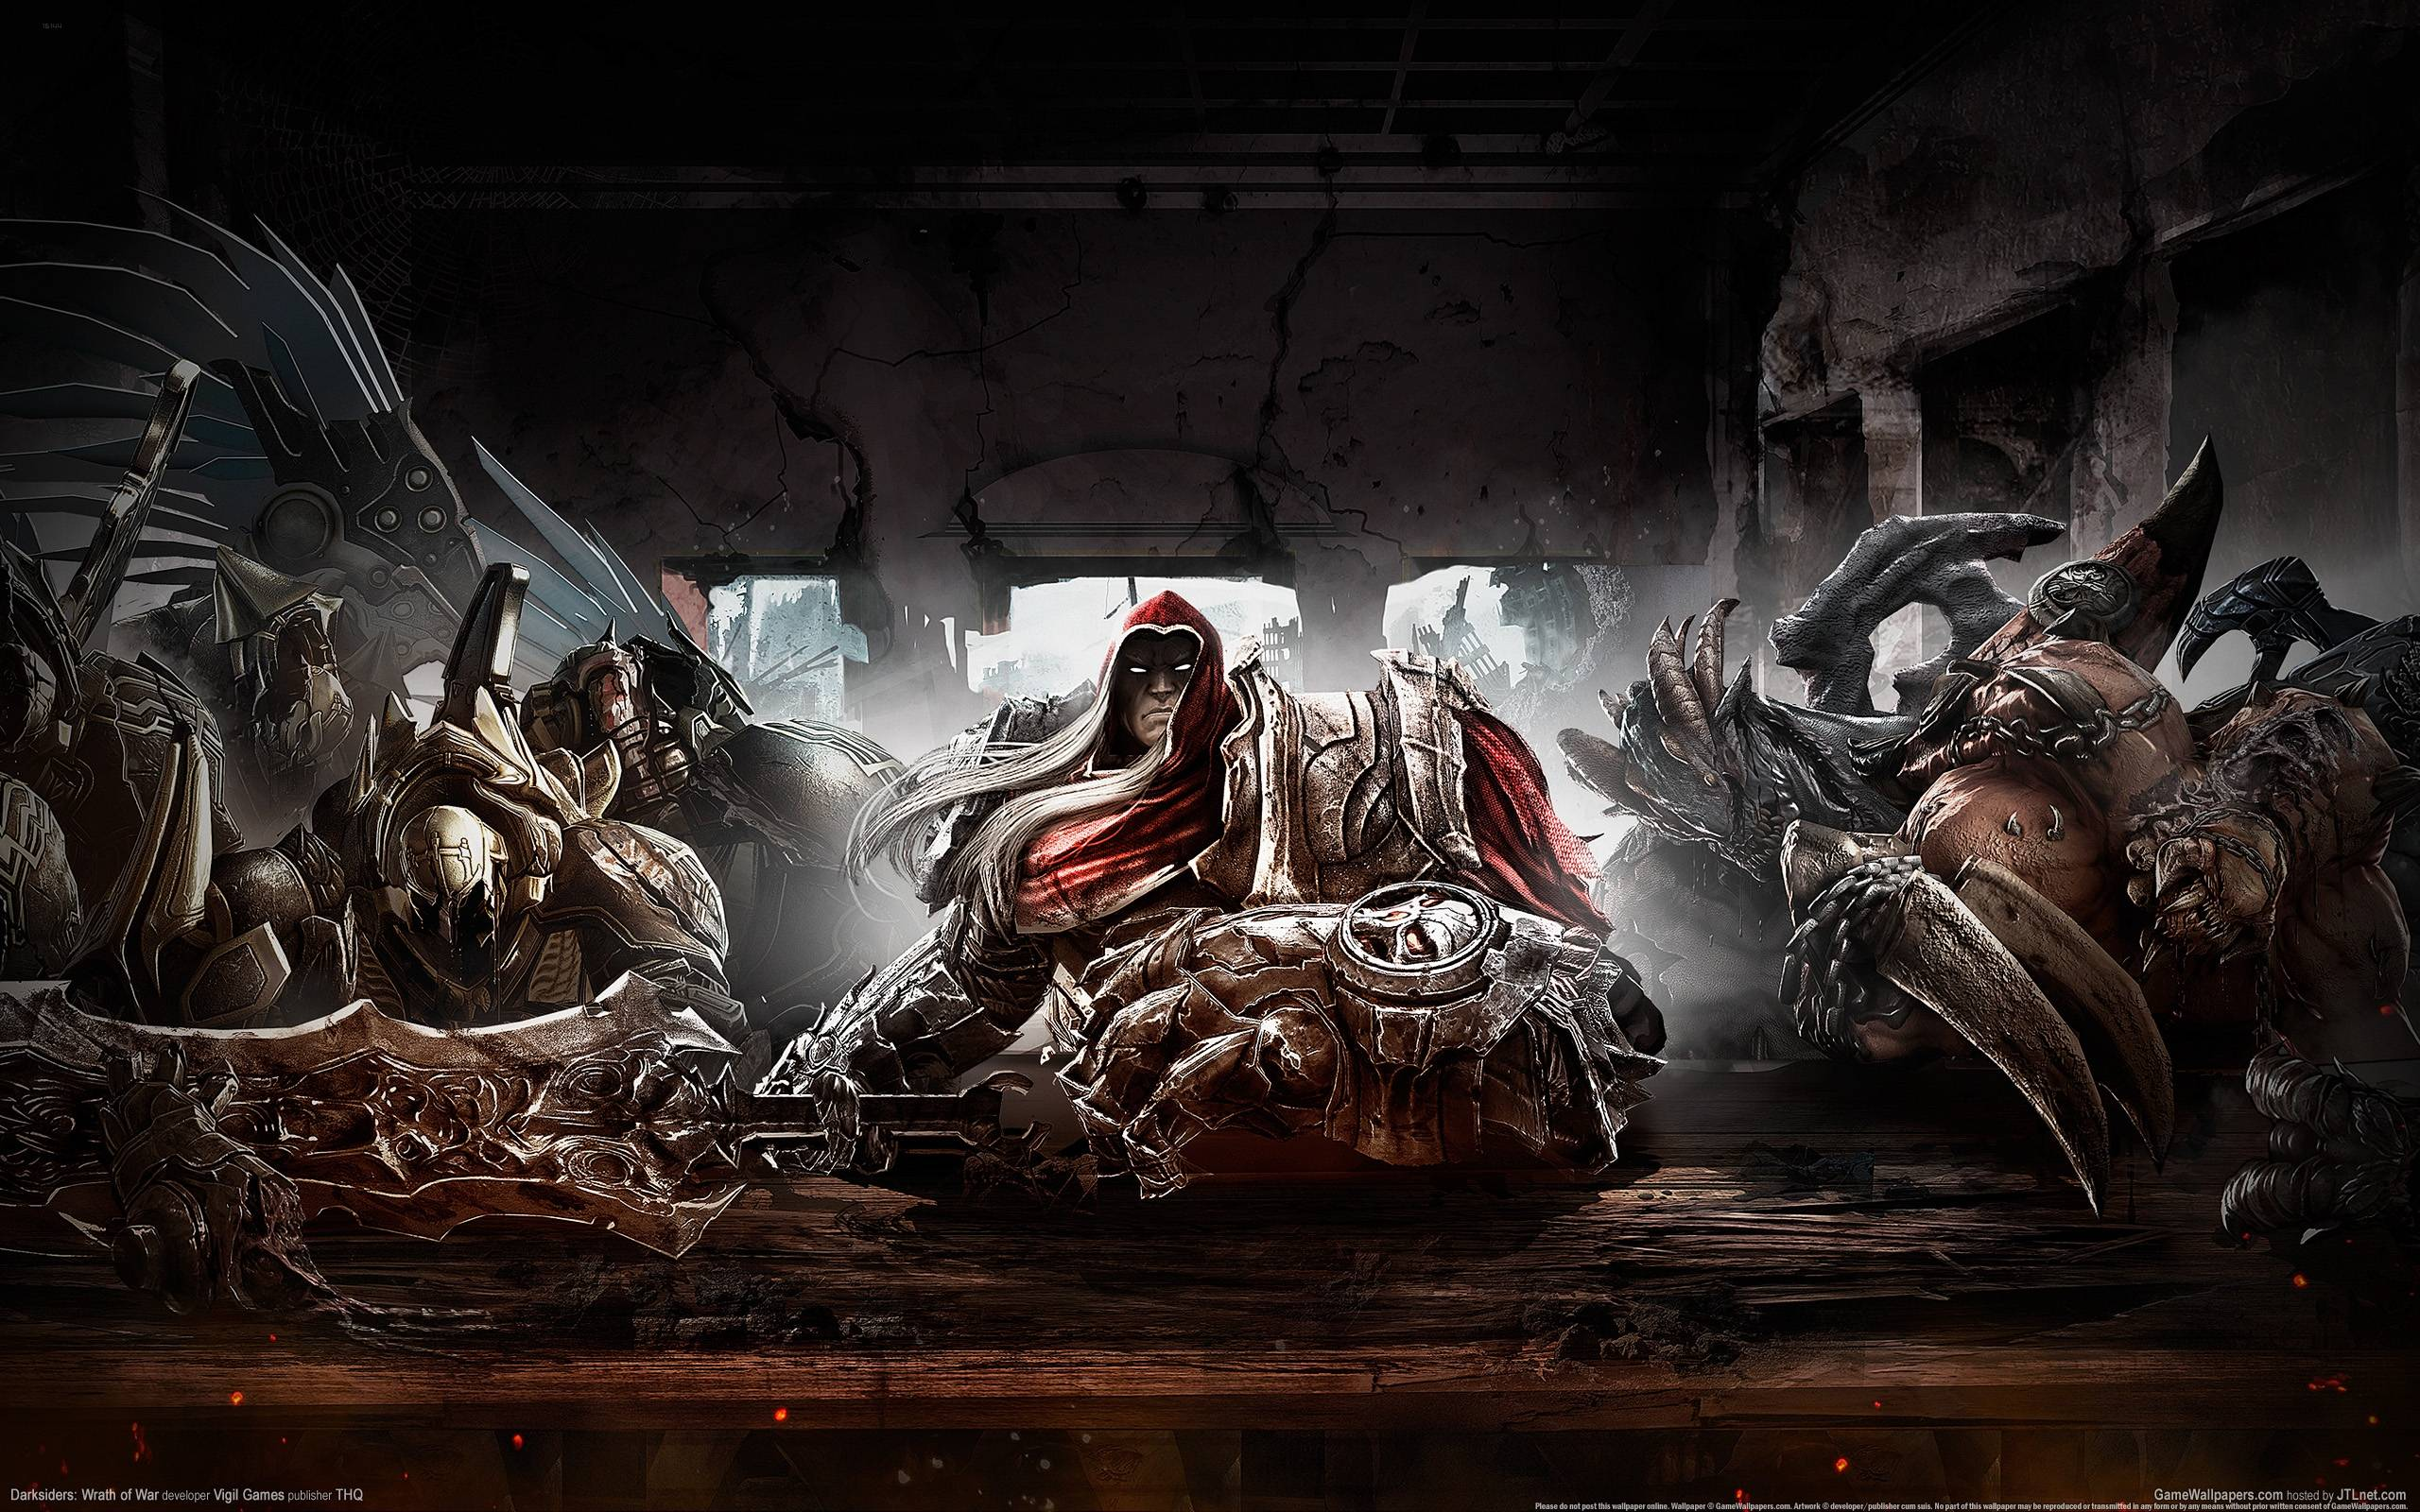 Wallpapers For > Four Horsemen Of The Apocalypse Wallpapers Darksiders